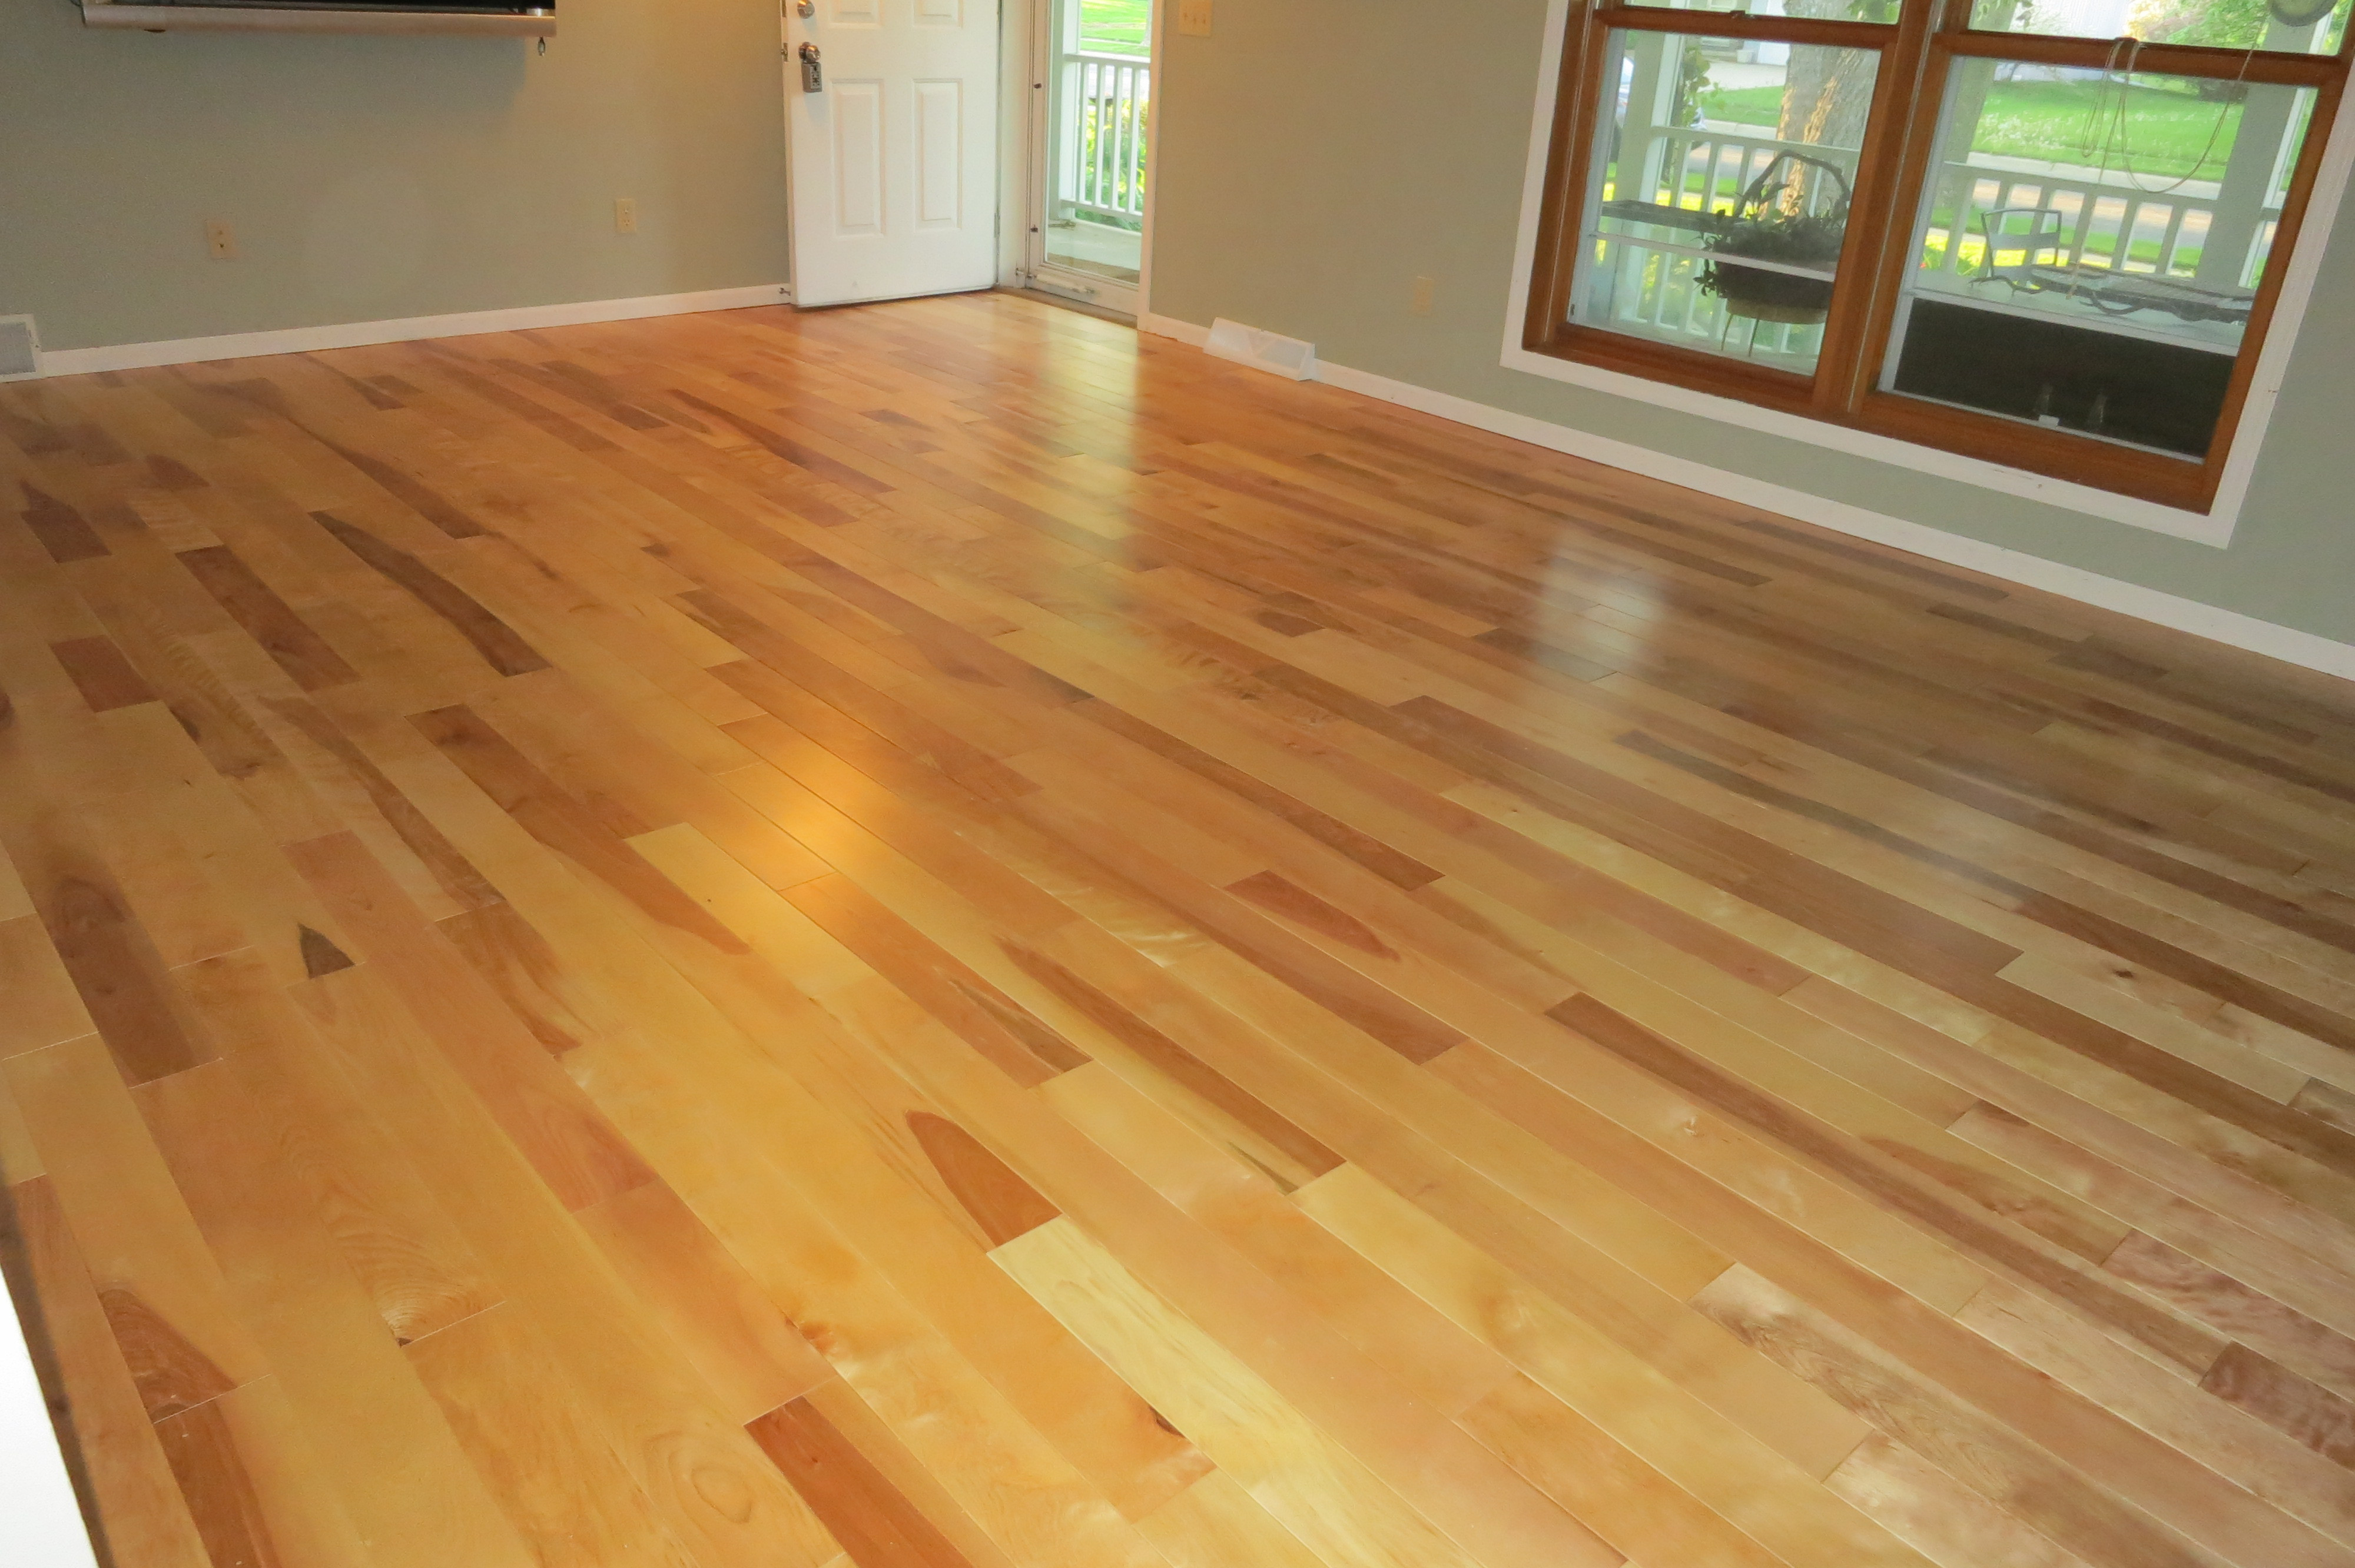 hardwood floor repair companies of imperial wood floors madison wi hardwood floors hardwood floor pertaining to home a